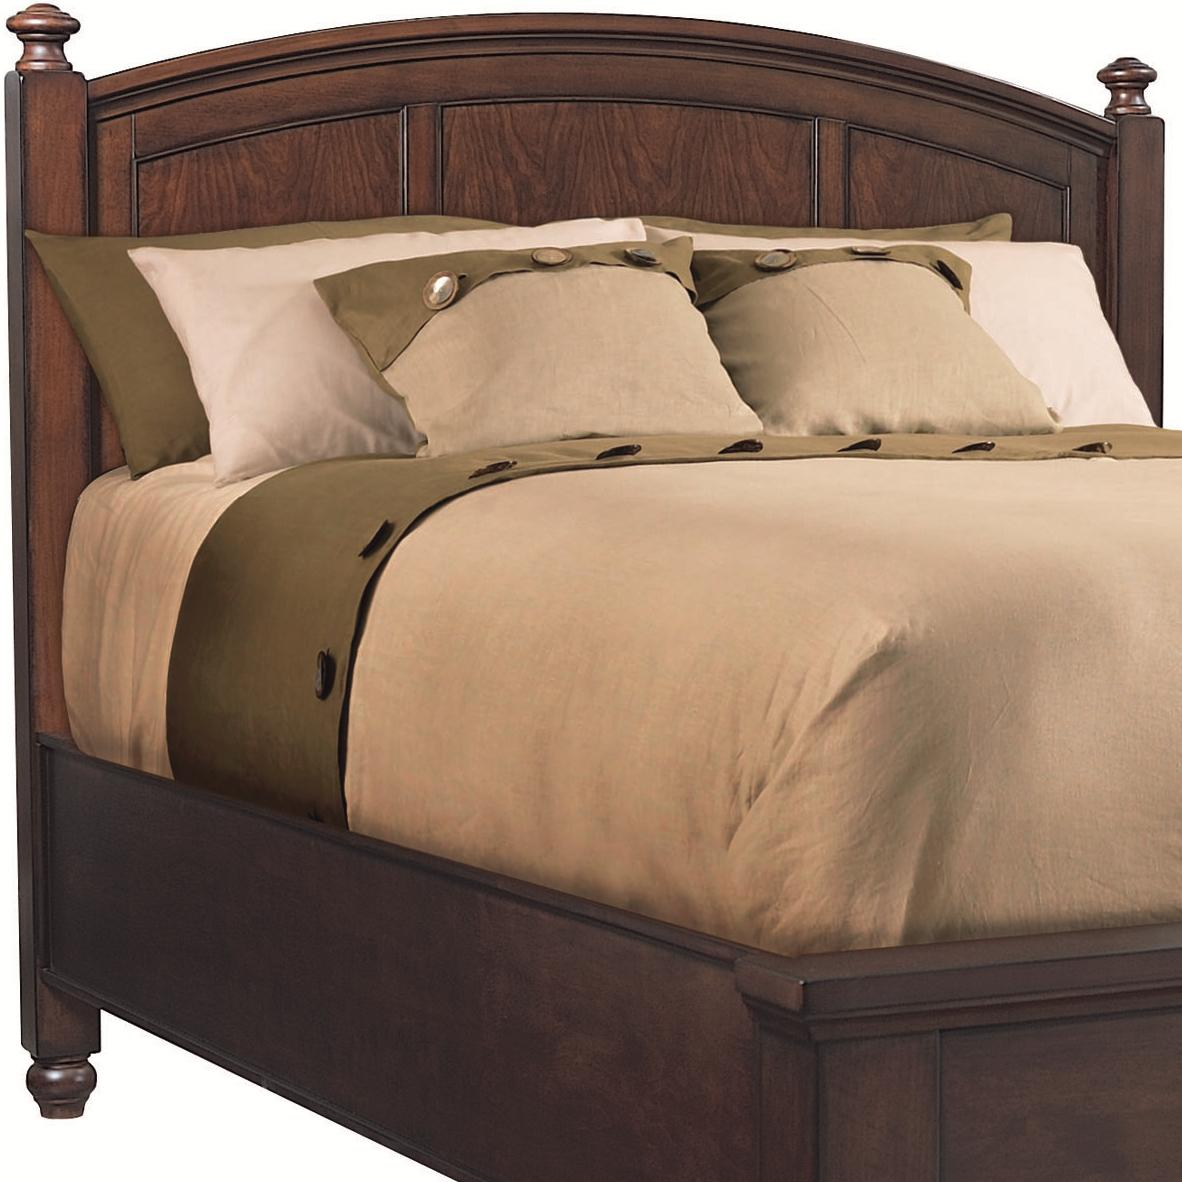 Aspenhome Cambridge King/Cal King Panel Headboard - Item Number: ICB-415-BCH